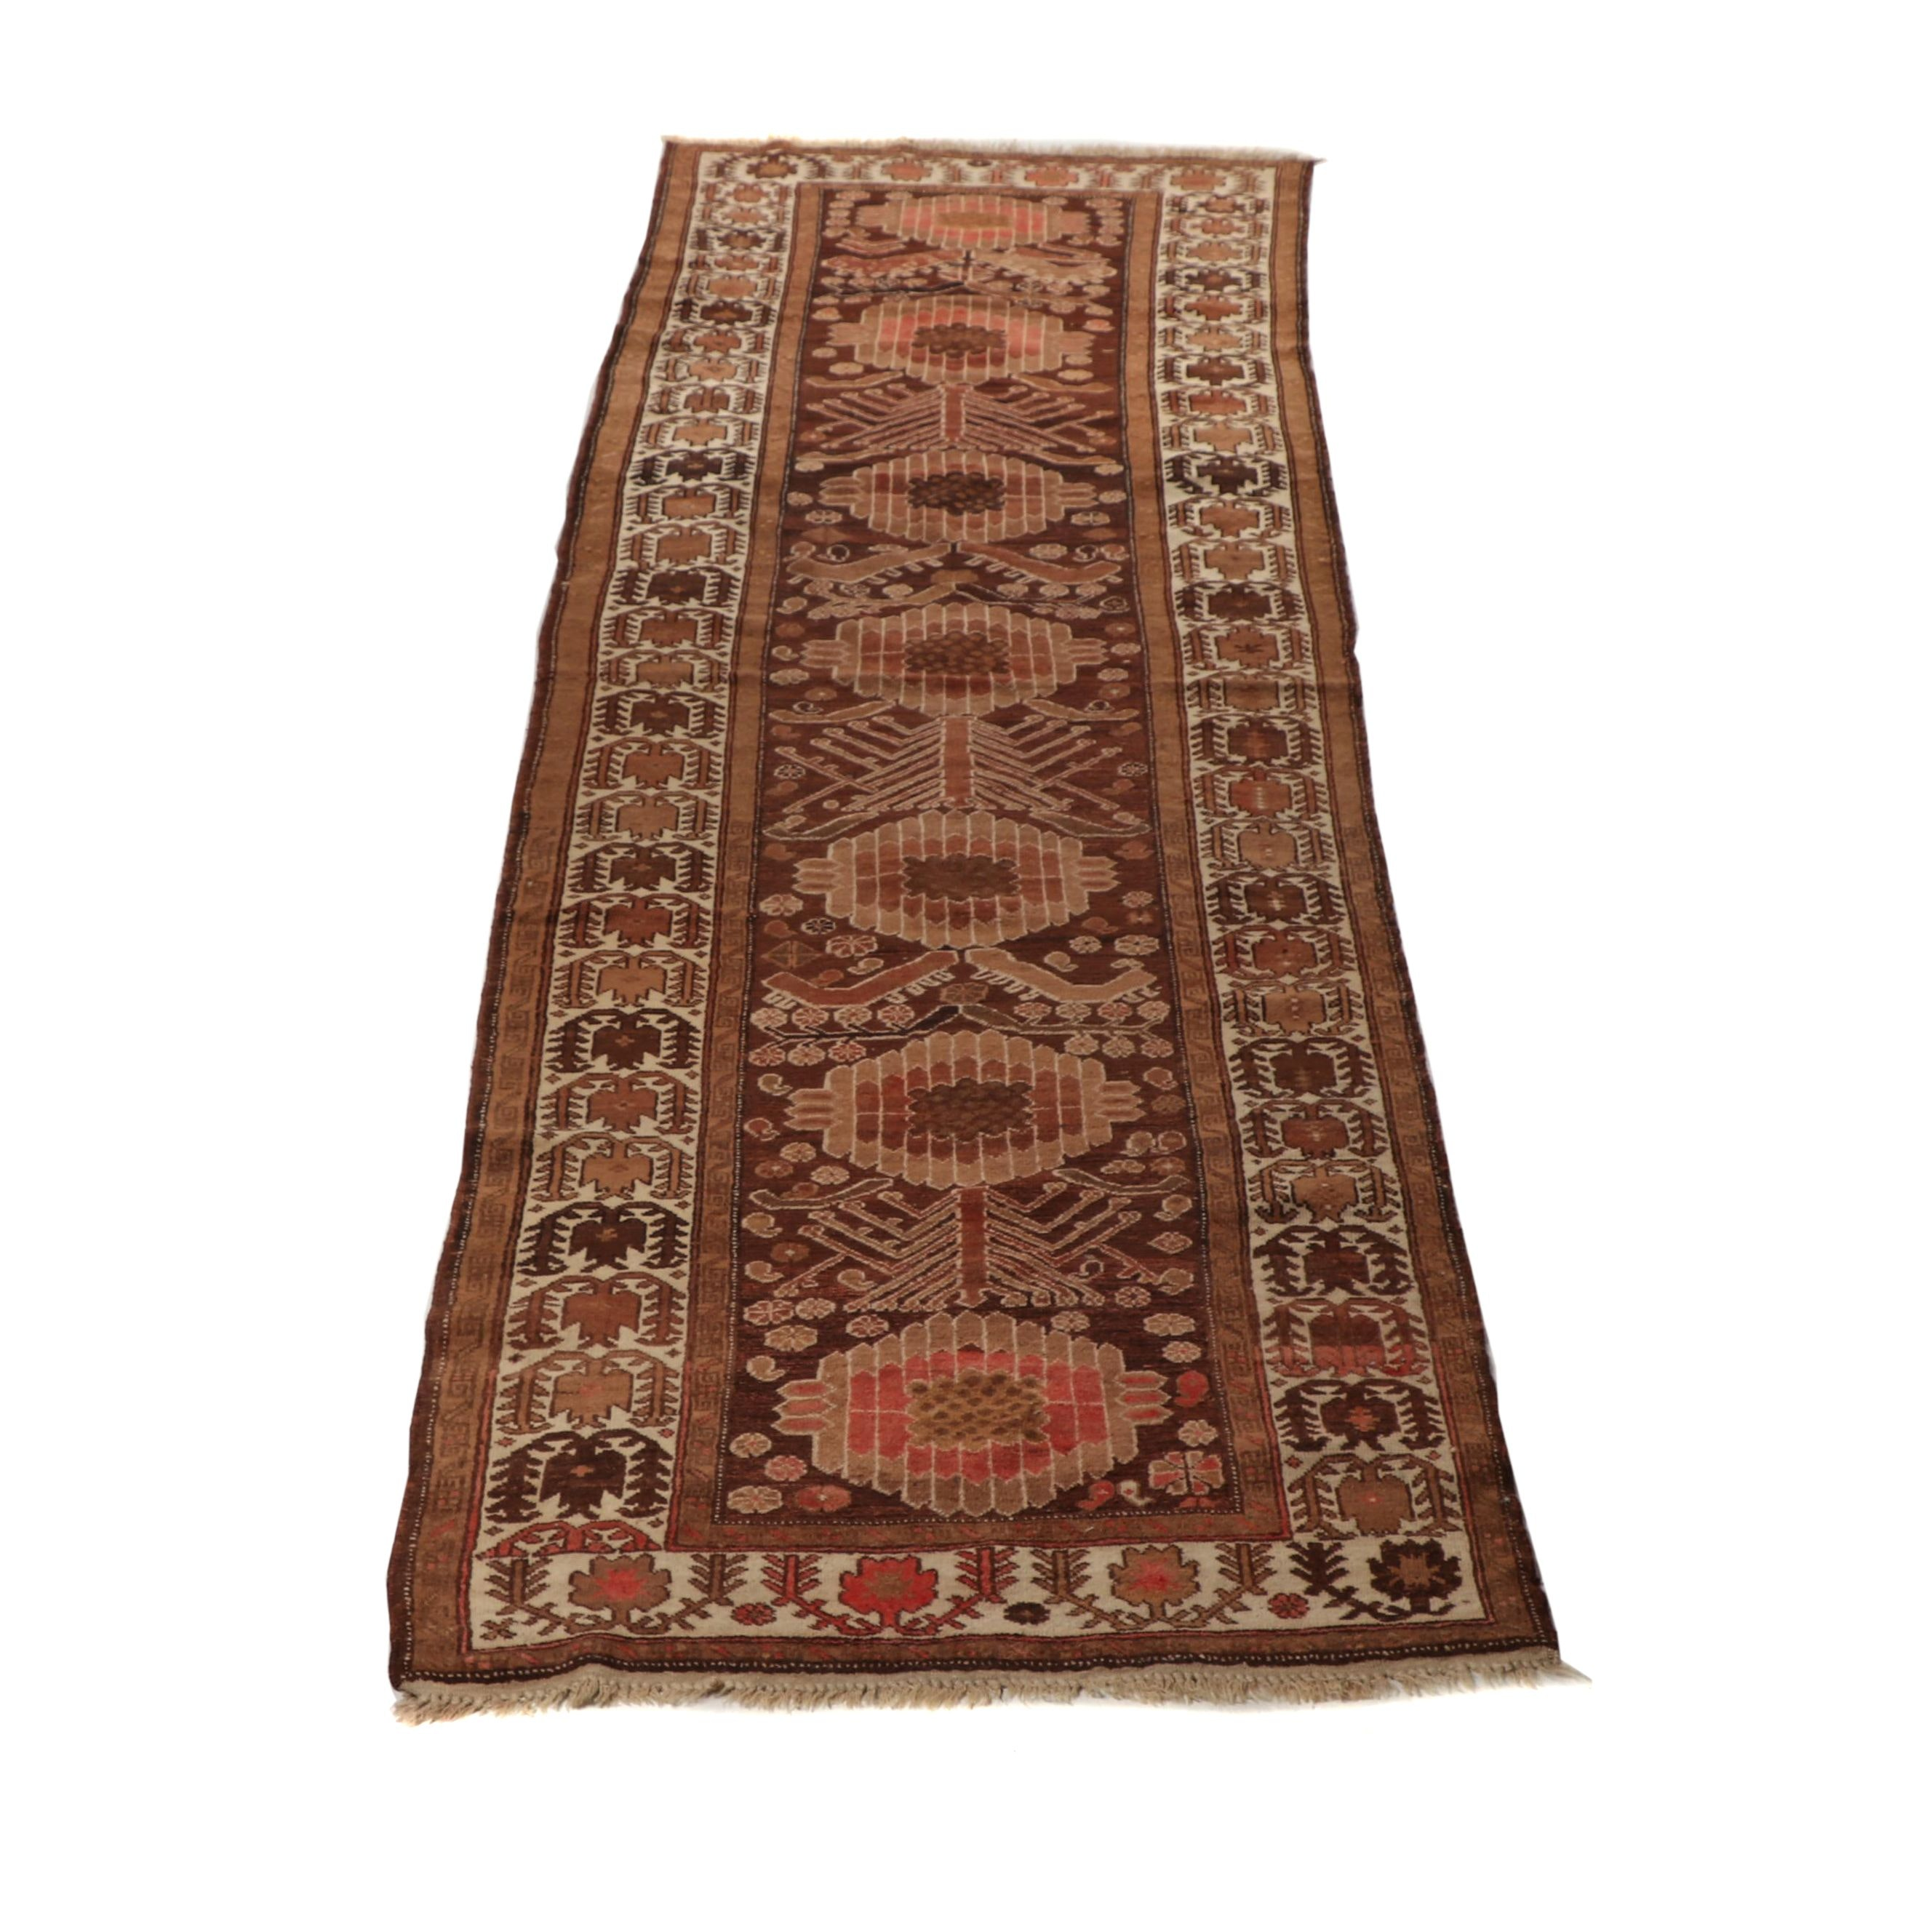 Hand-Knotted Afghani Wool Carpet Runner